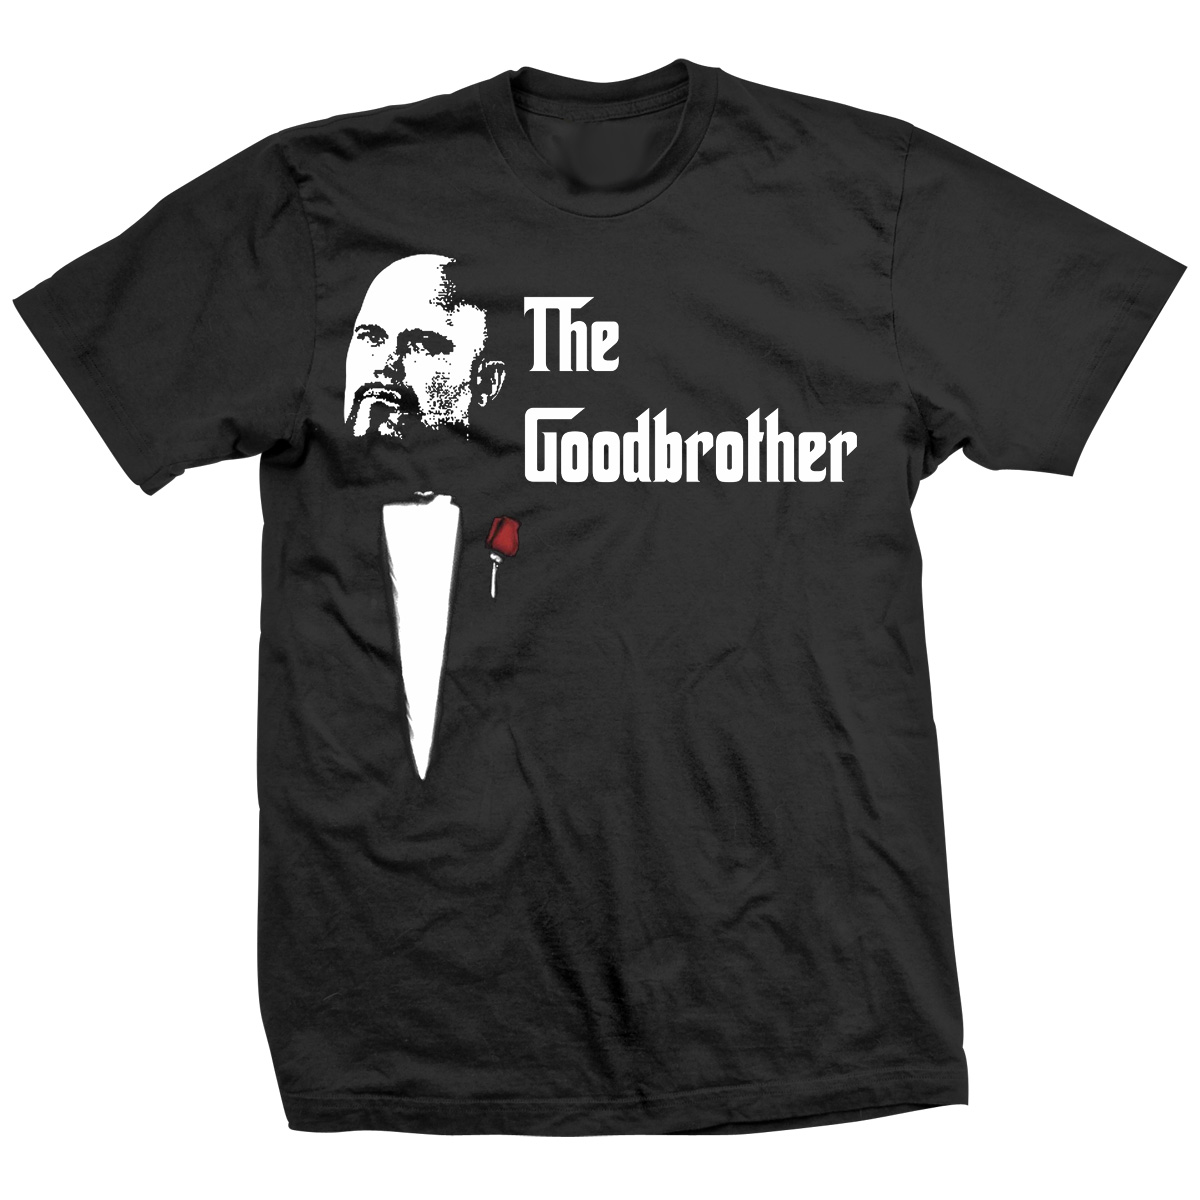 The Goodbrother T-shirt